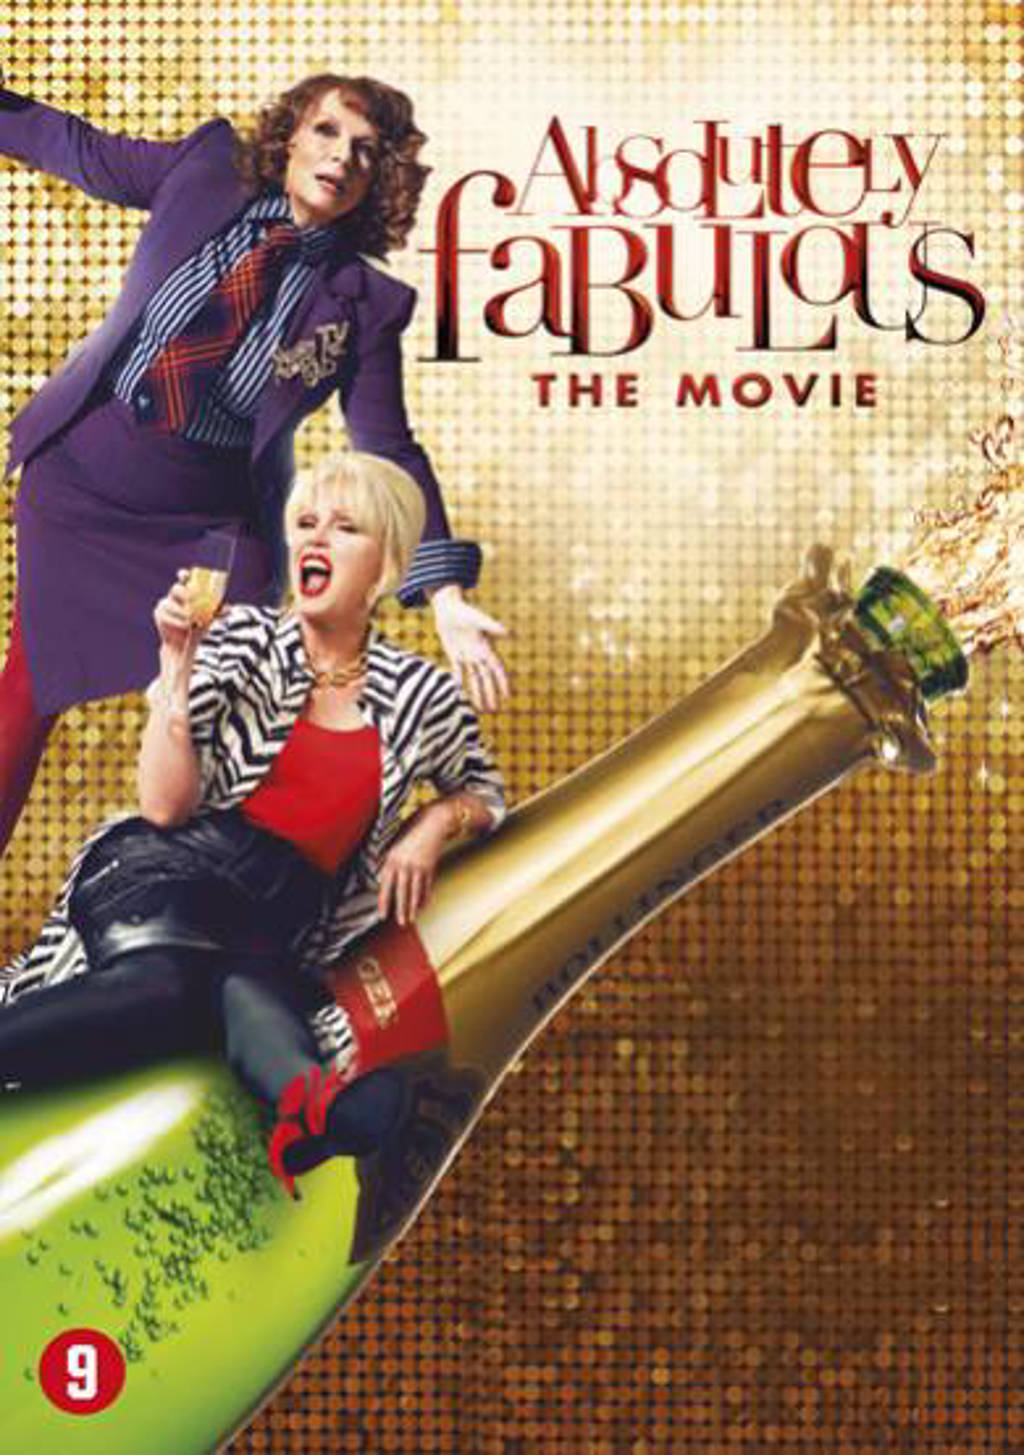 Absolutely fabulous - The movie (DVD)